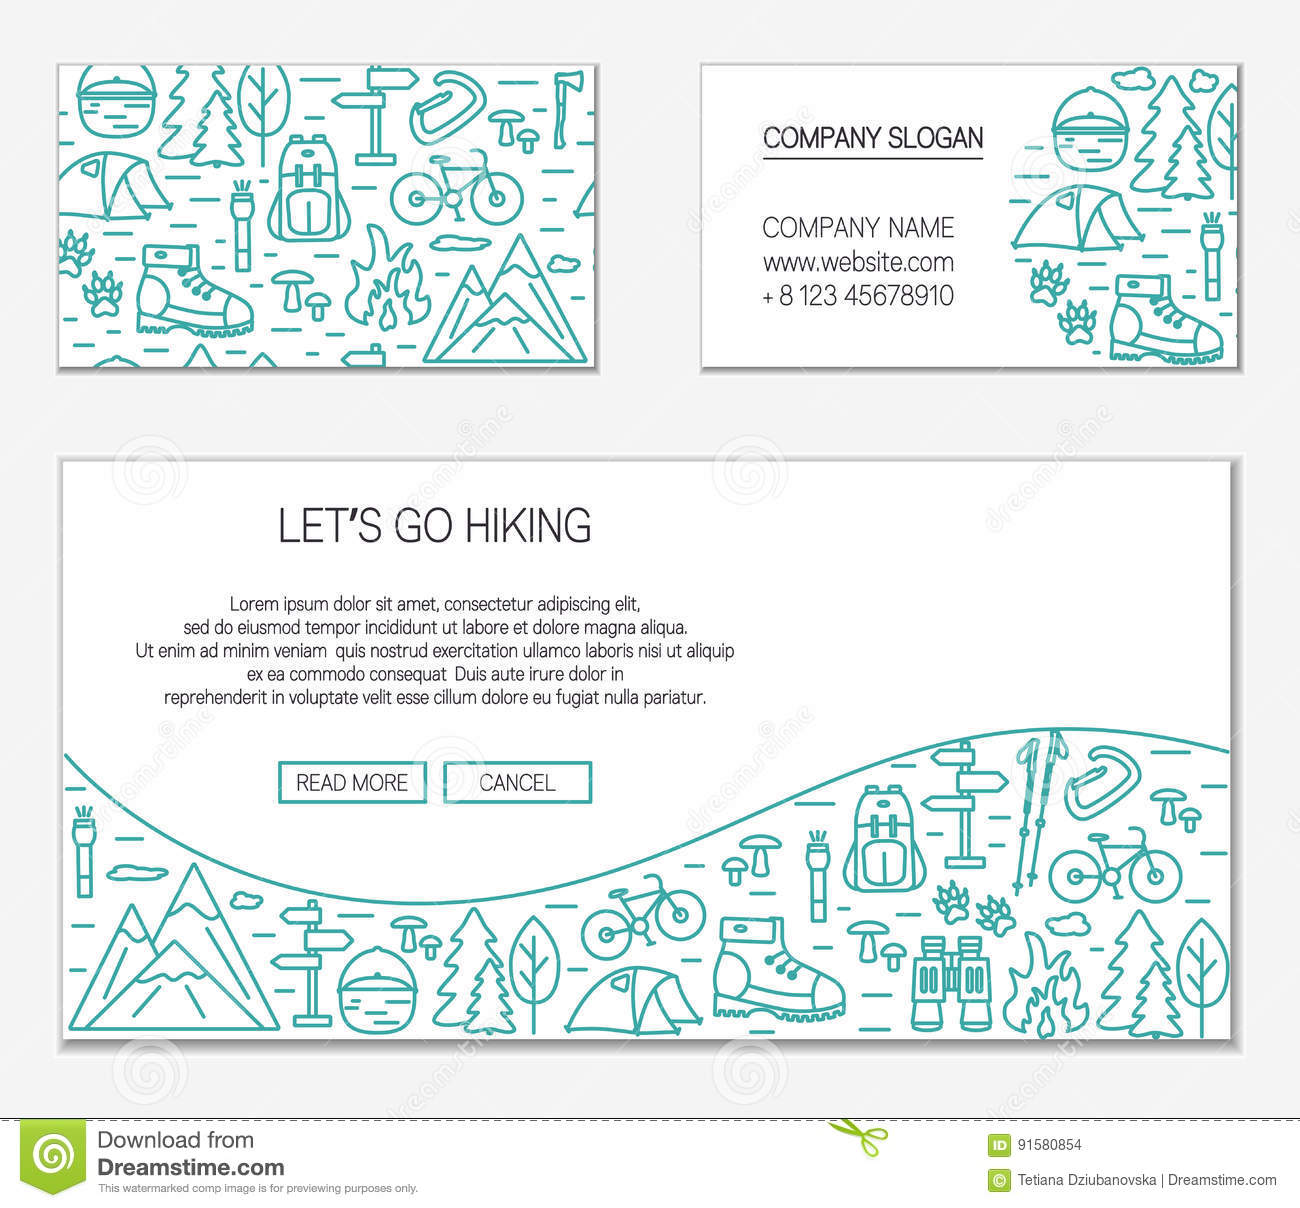 Generous 10 Envelope Template Indesign Thick 1st Birthday Invitation Template Round 2 Page Resume Header 2013 Resume Writing Trends Old 2014 Planner Template Orange2014 Sample Resume Templates Outdoor And Travel Corporate Identity Templates. Set Of Vector C ..